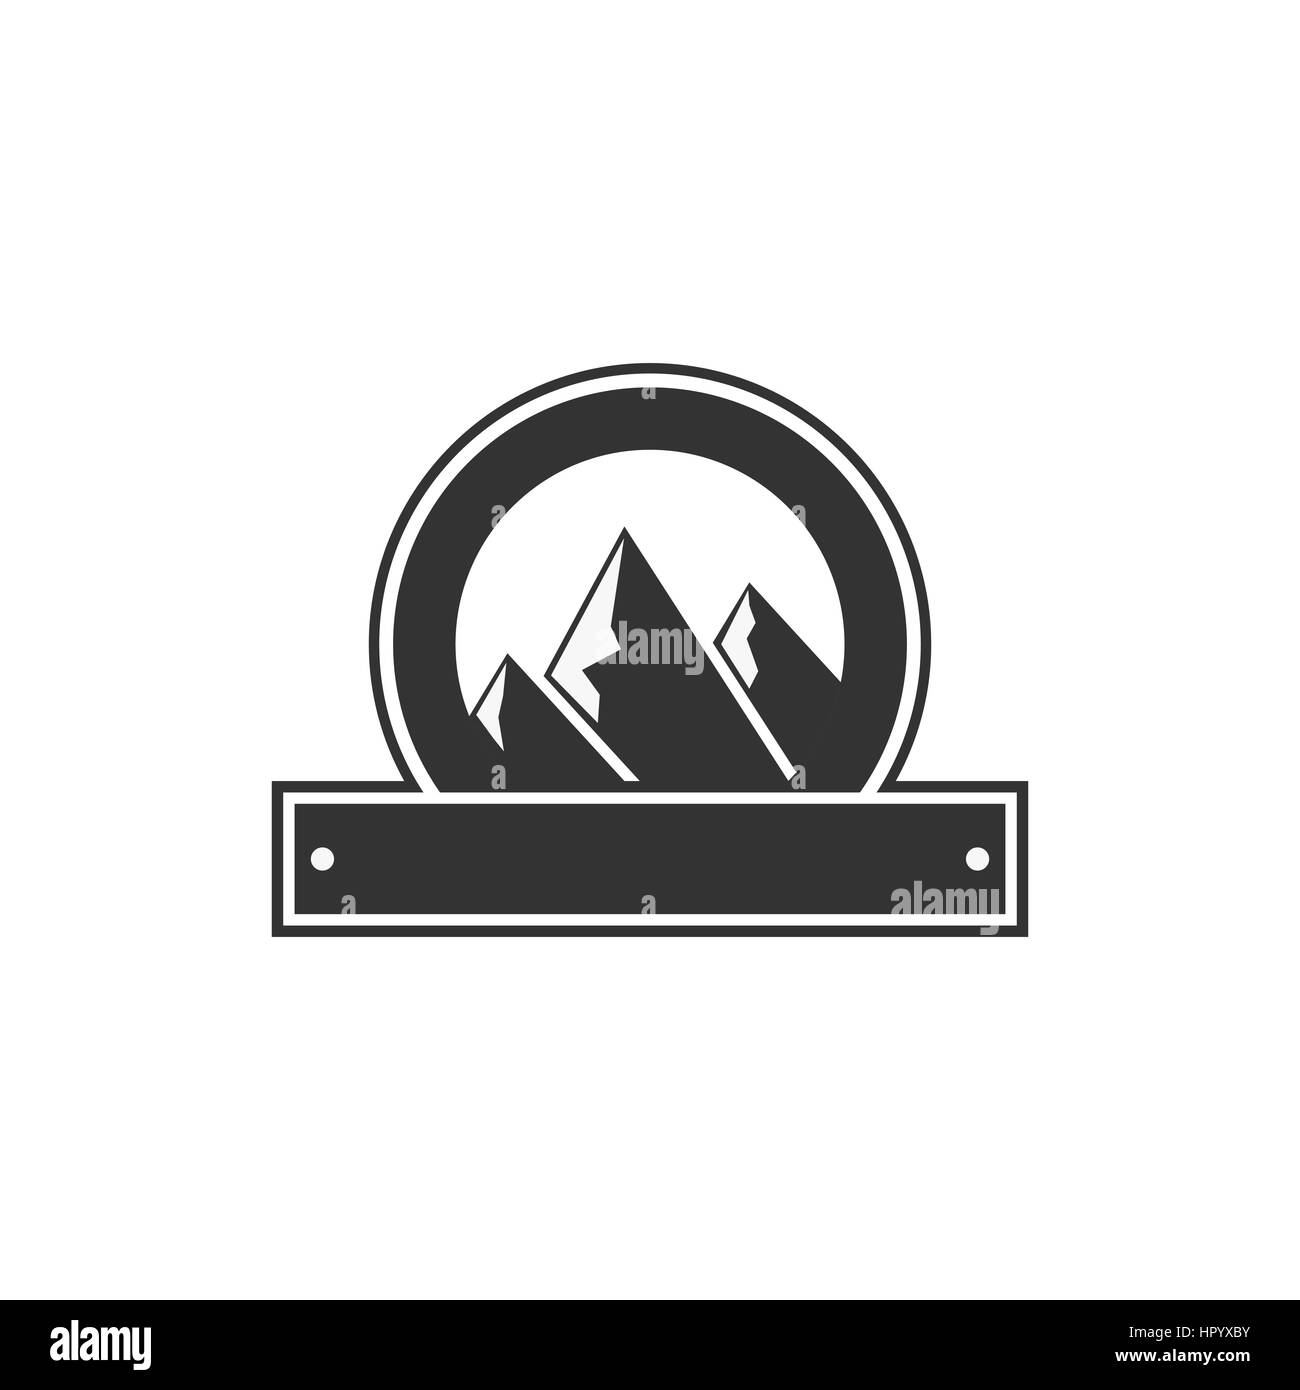 Vector Blank Badge Form With Mountains Good For Retro Adventure Labels Logos Vintage Silhouette Insignia Design Isolated On White Background